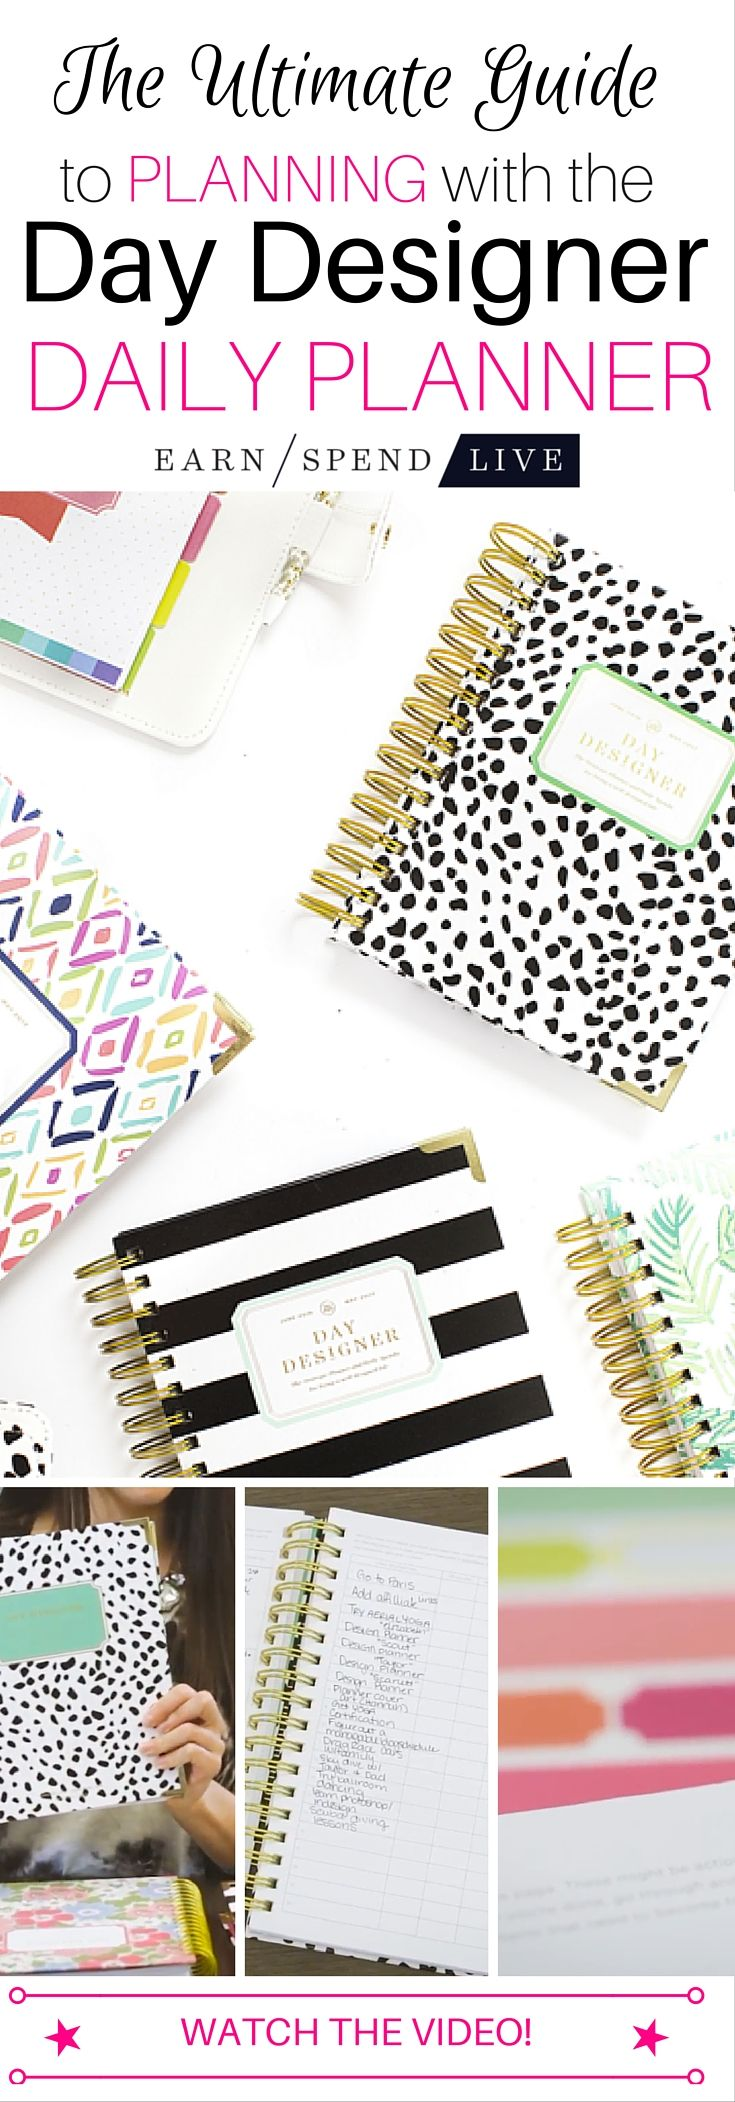 How to use your @daydesigner Planner: earnspendlive.com expert planner explains how she uses her planner, from goal-setting worksheets to the daily layout. A must watch!